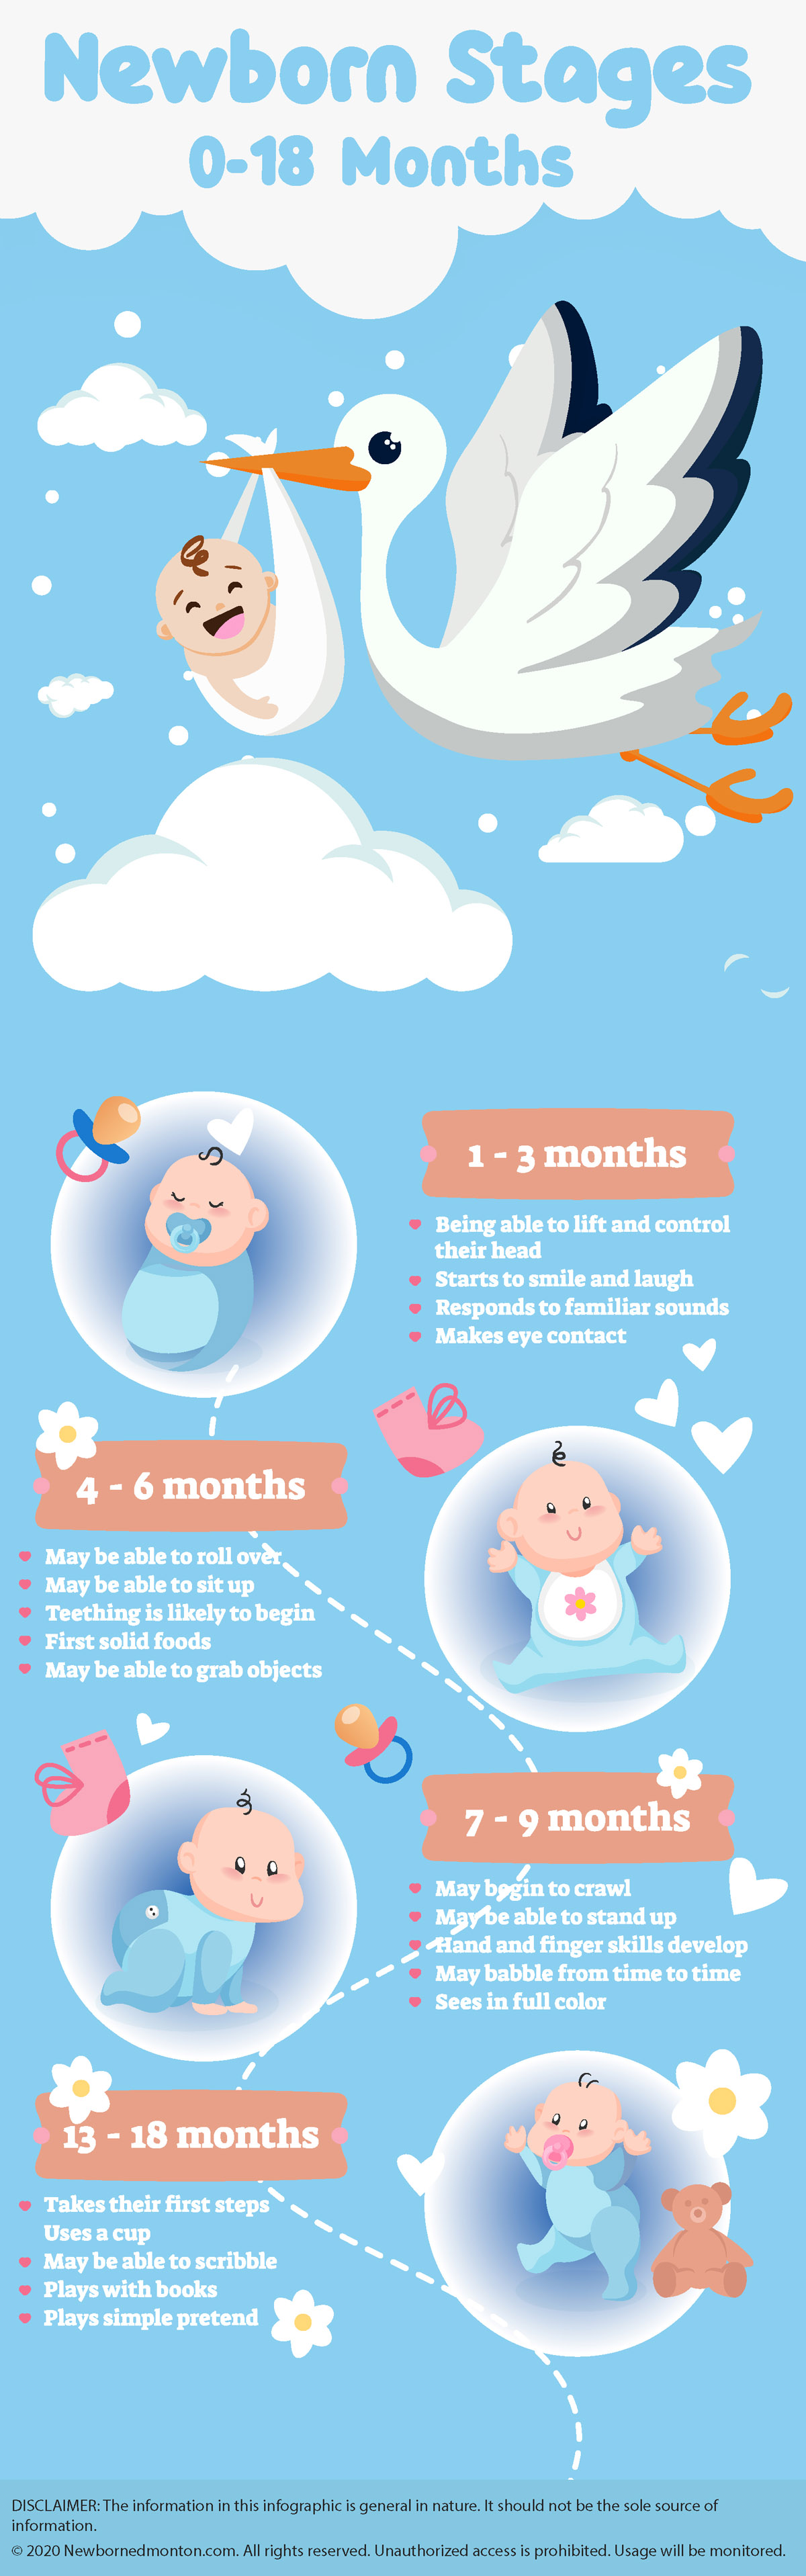 What Are Newborn Stages is Newborn Photography Safe?